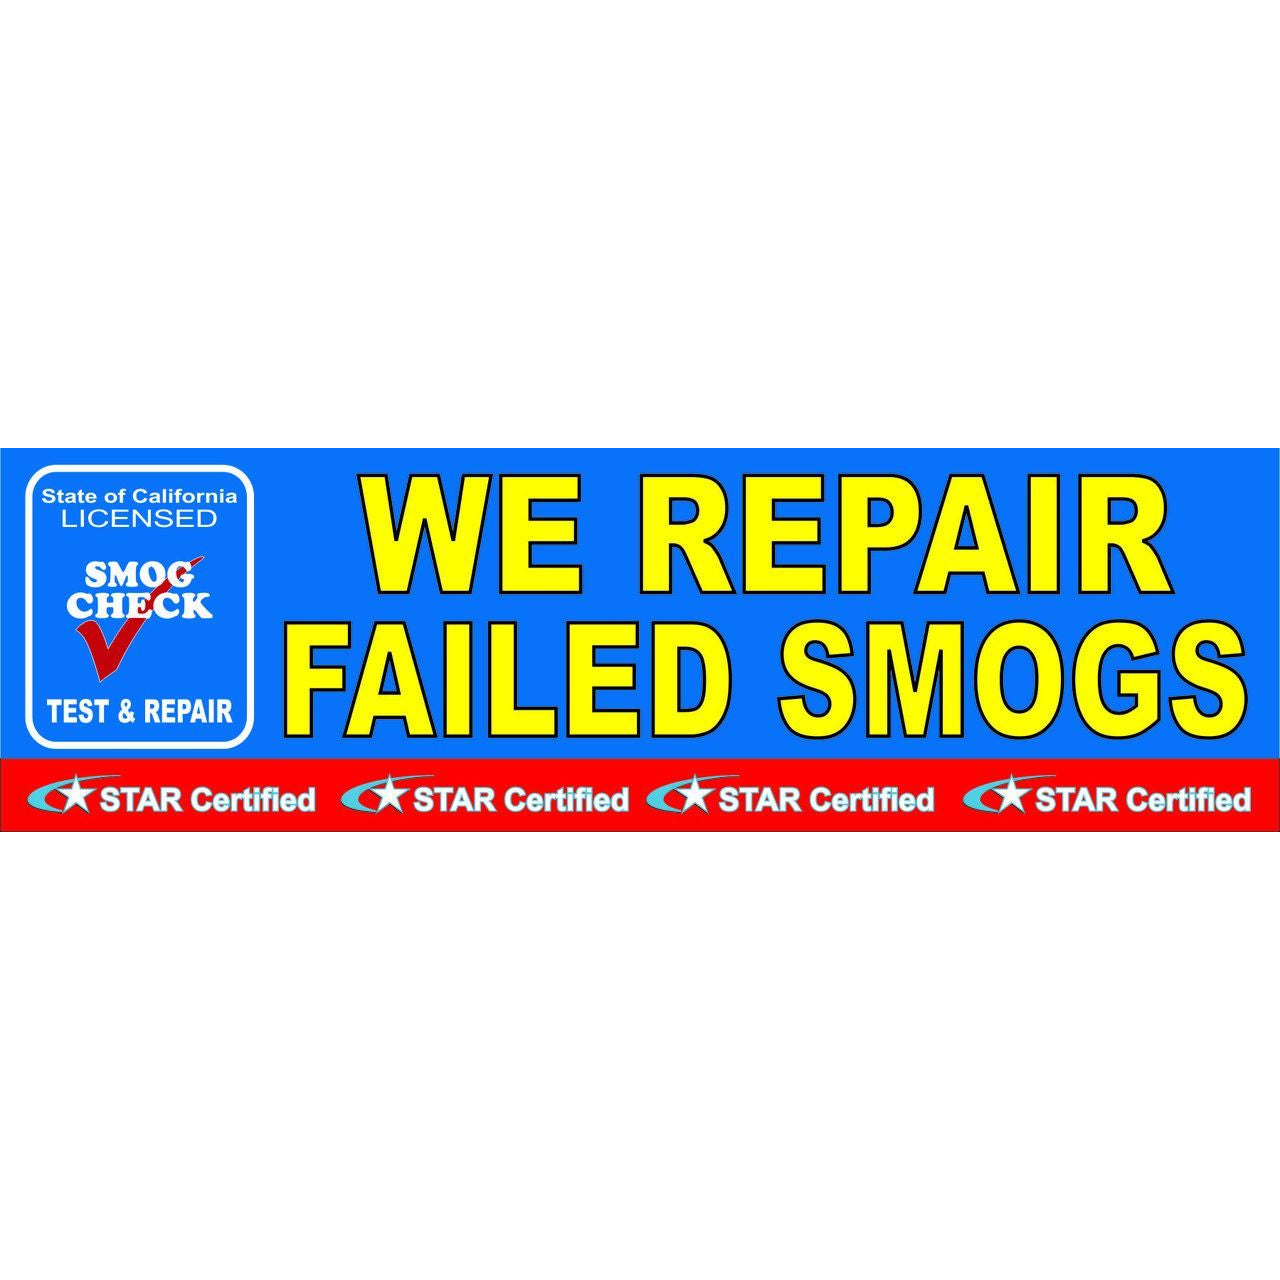 WE REPAIR FAILED SMOGS  3 X 10 BANNER # SB941